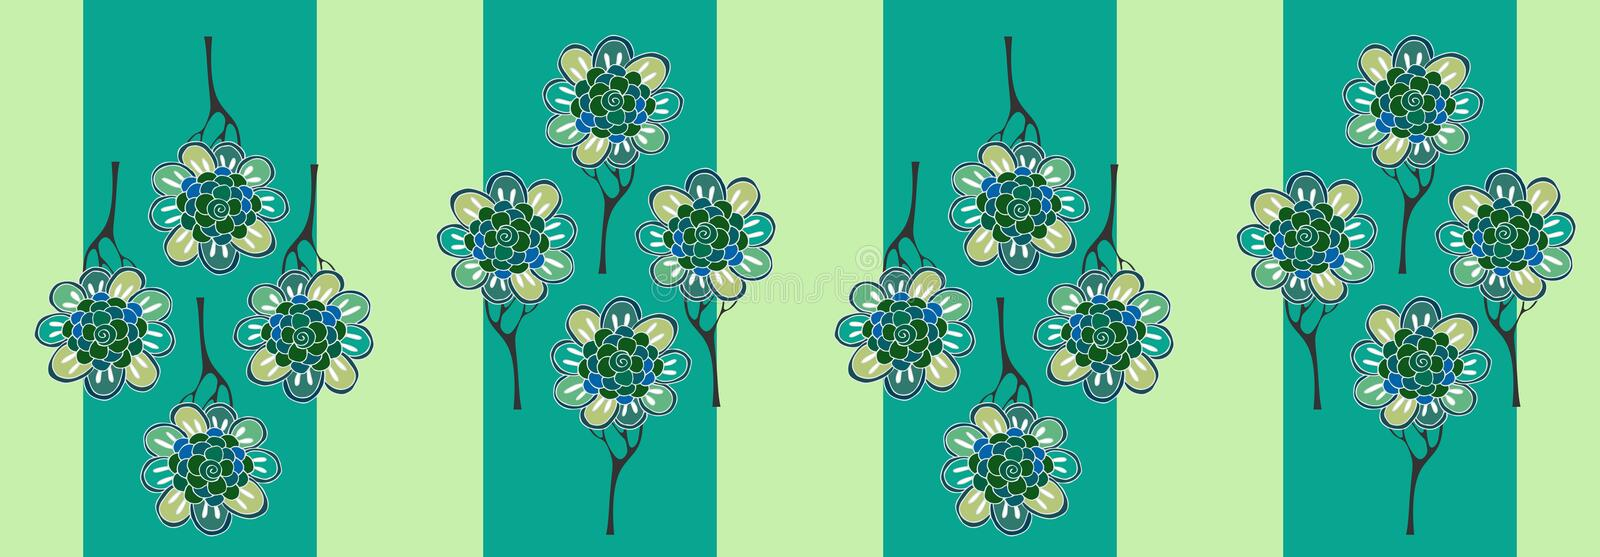 Floral trees on striped background. Summer vector illustration.  royalty free illustration